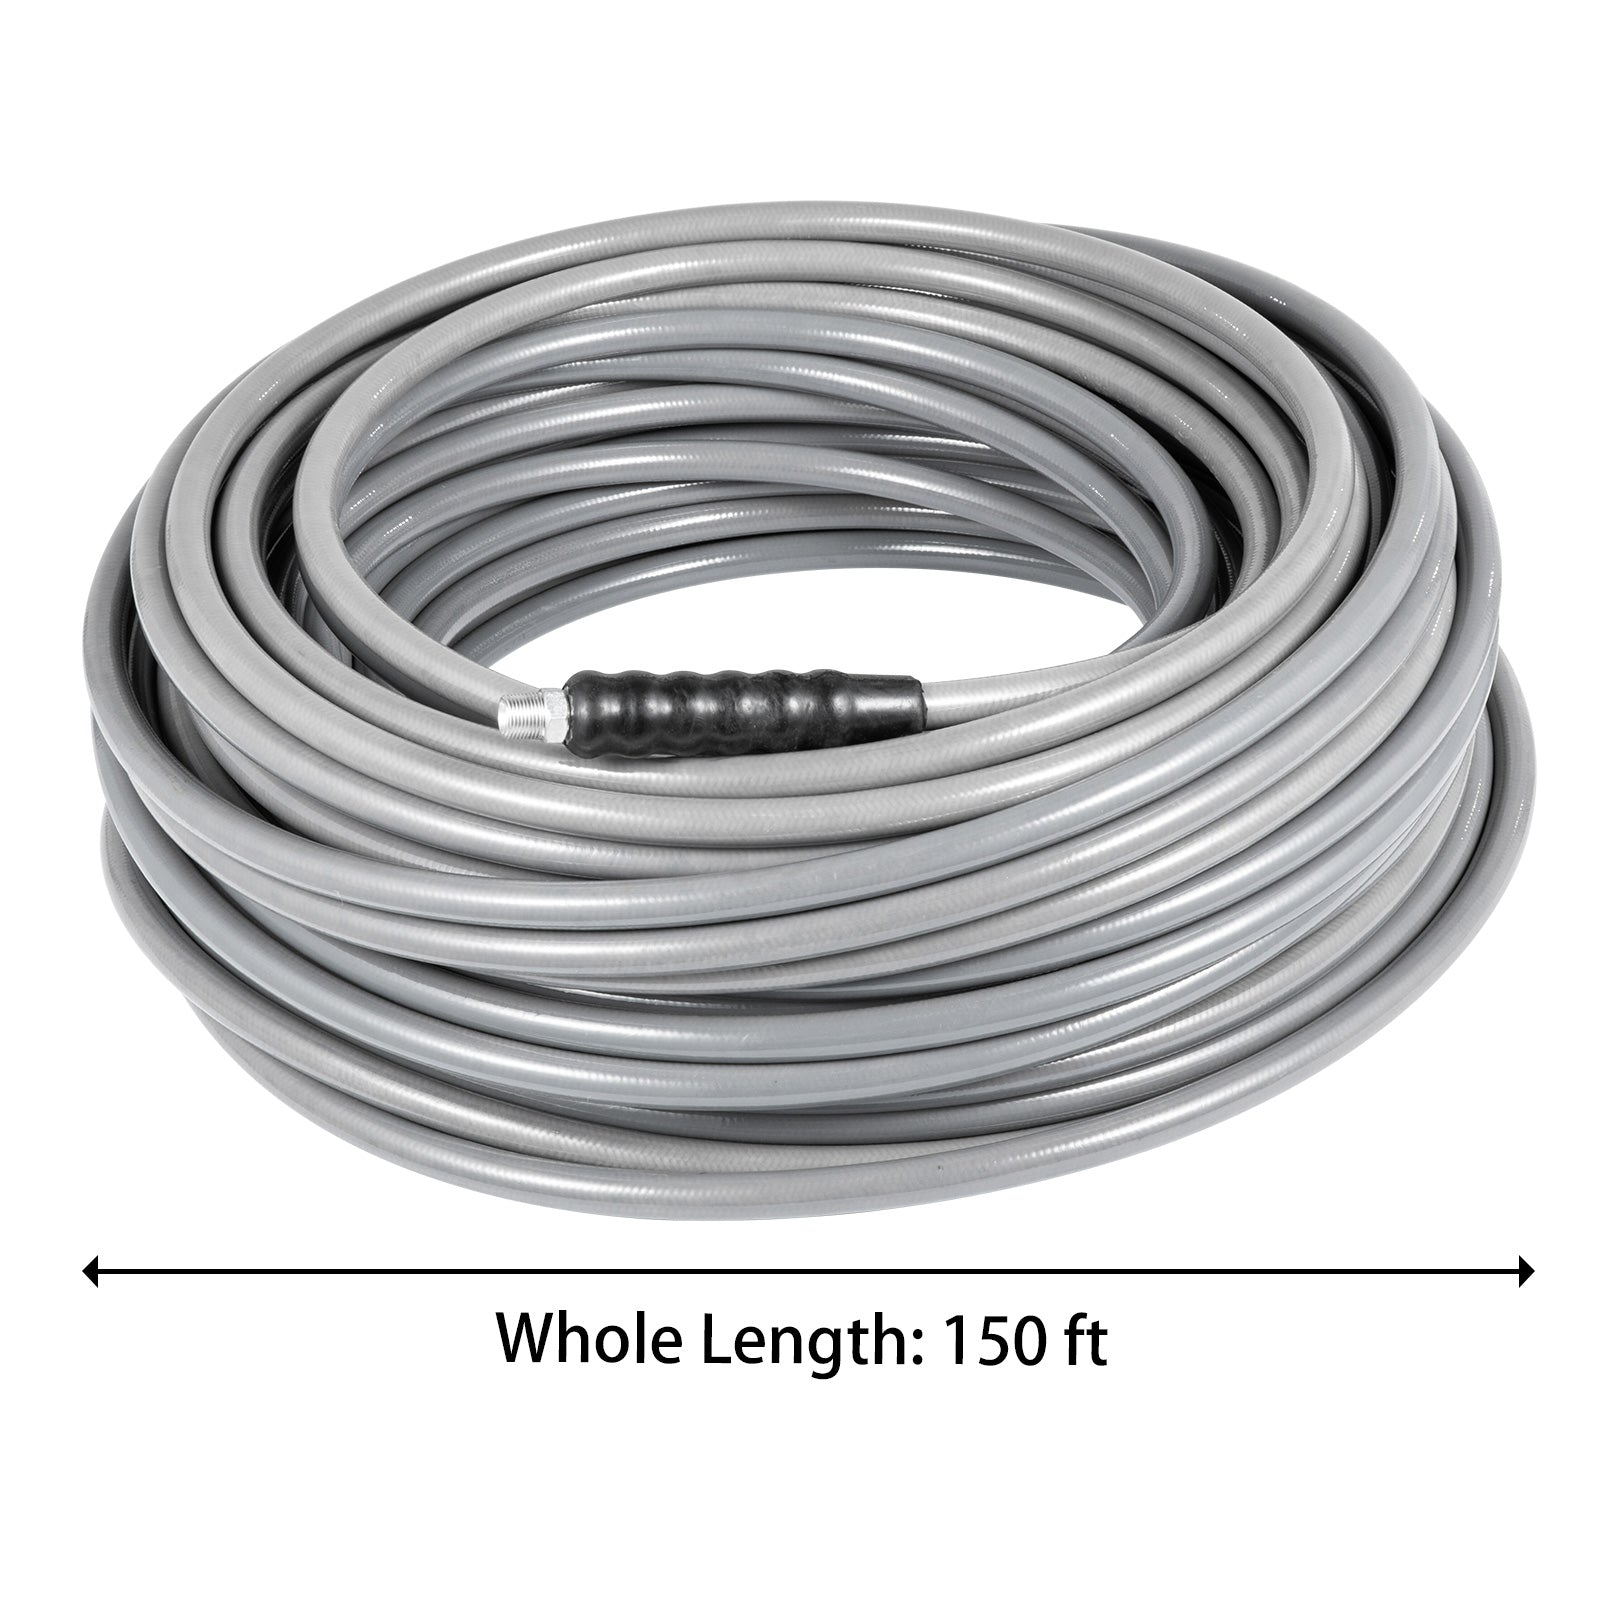 "3/8"" 150ft Carpet Cleaning Hose Pressure Washer Cold Water 4500psi"